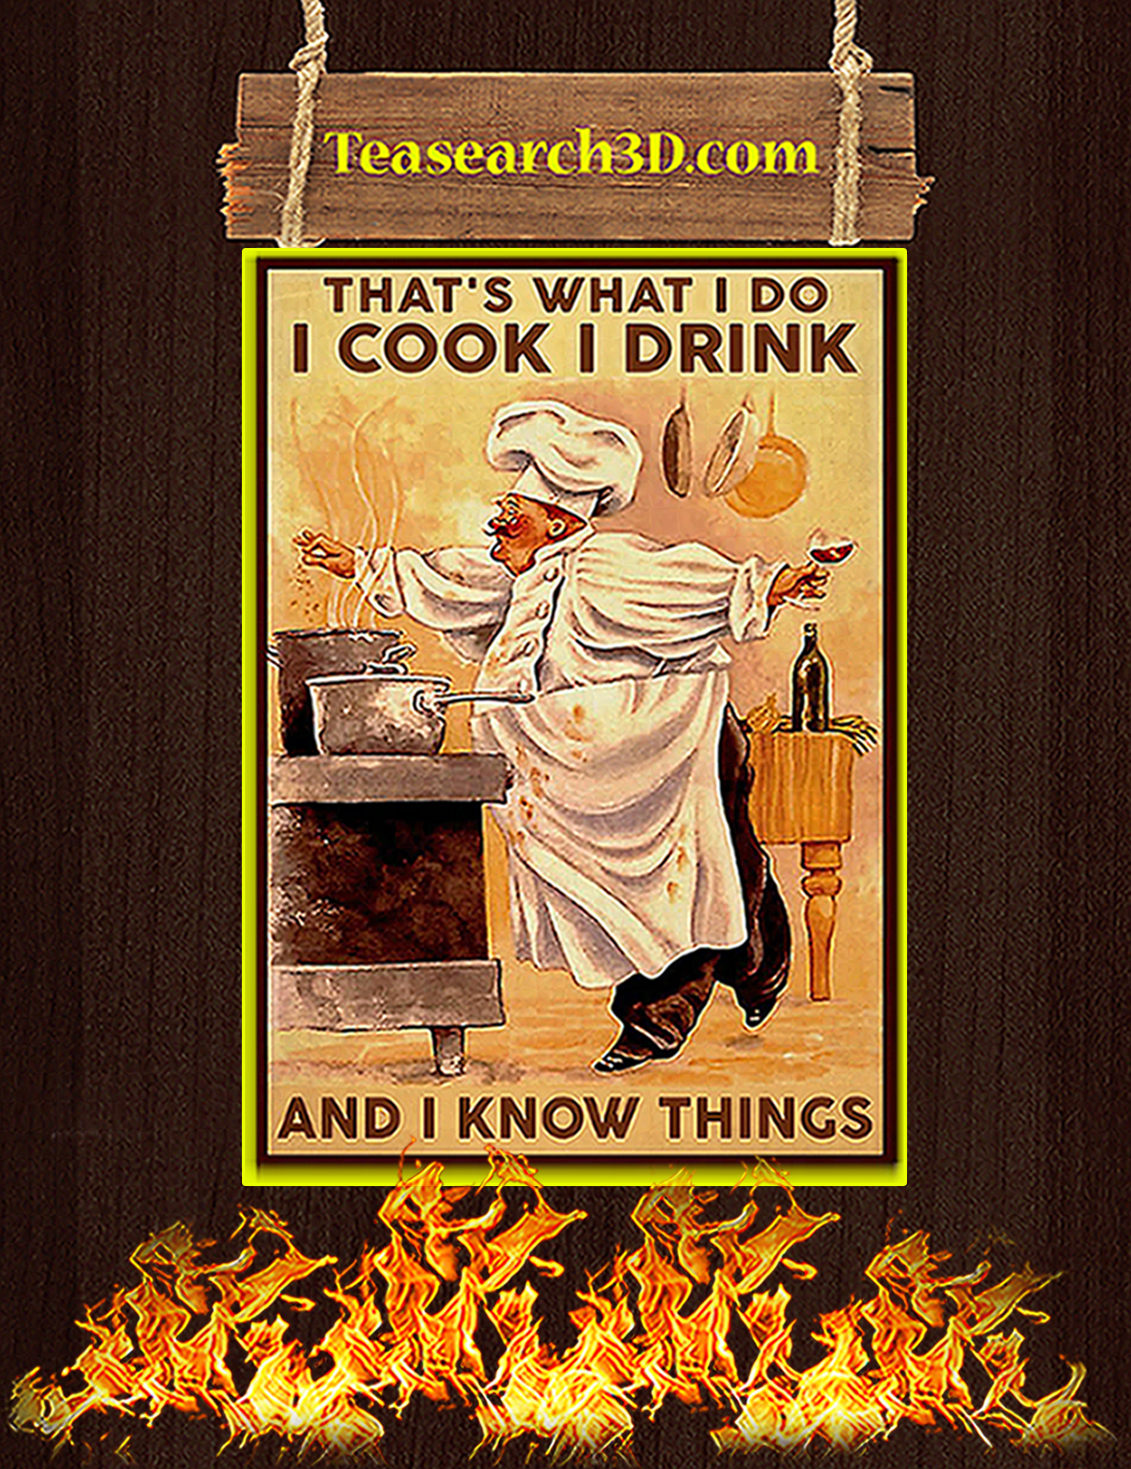 Chef cook that's what I do I cook I drink and I know things poster A3